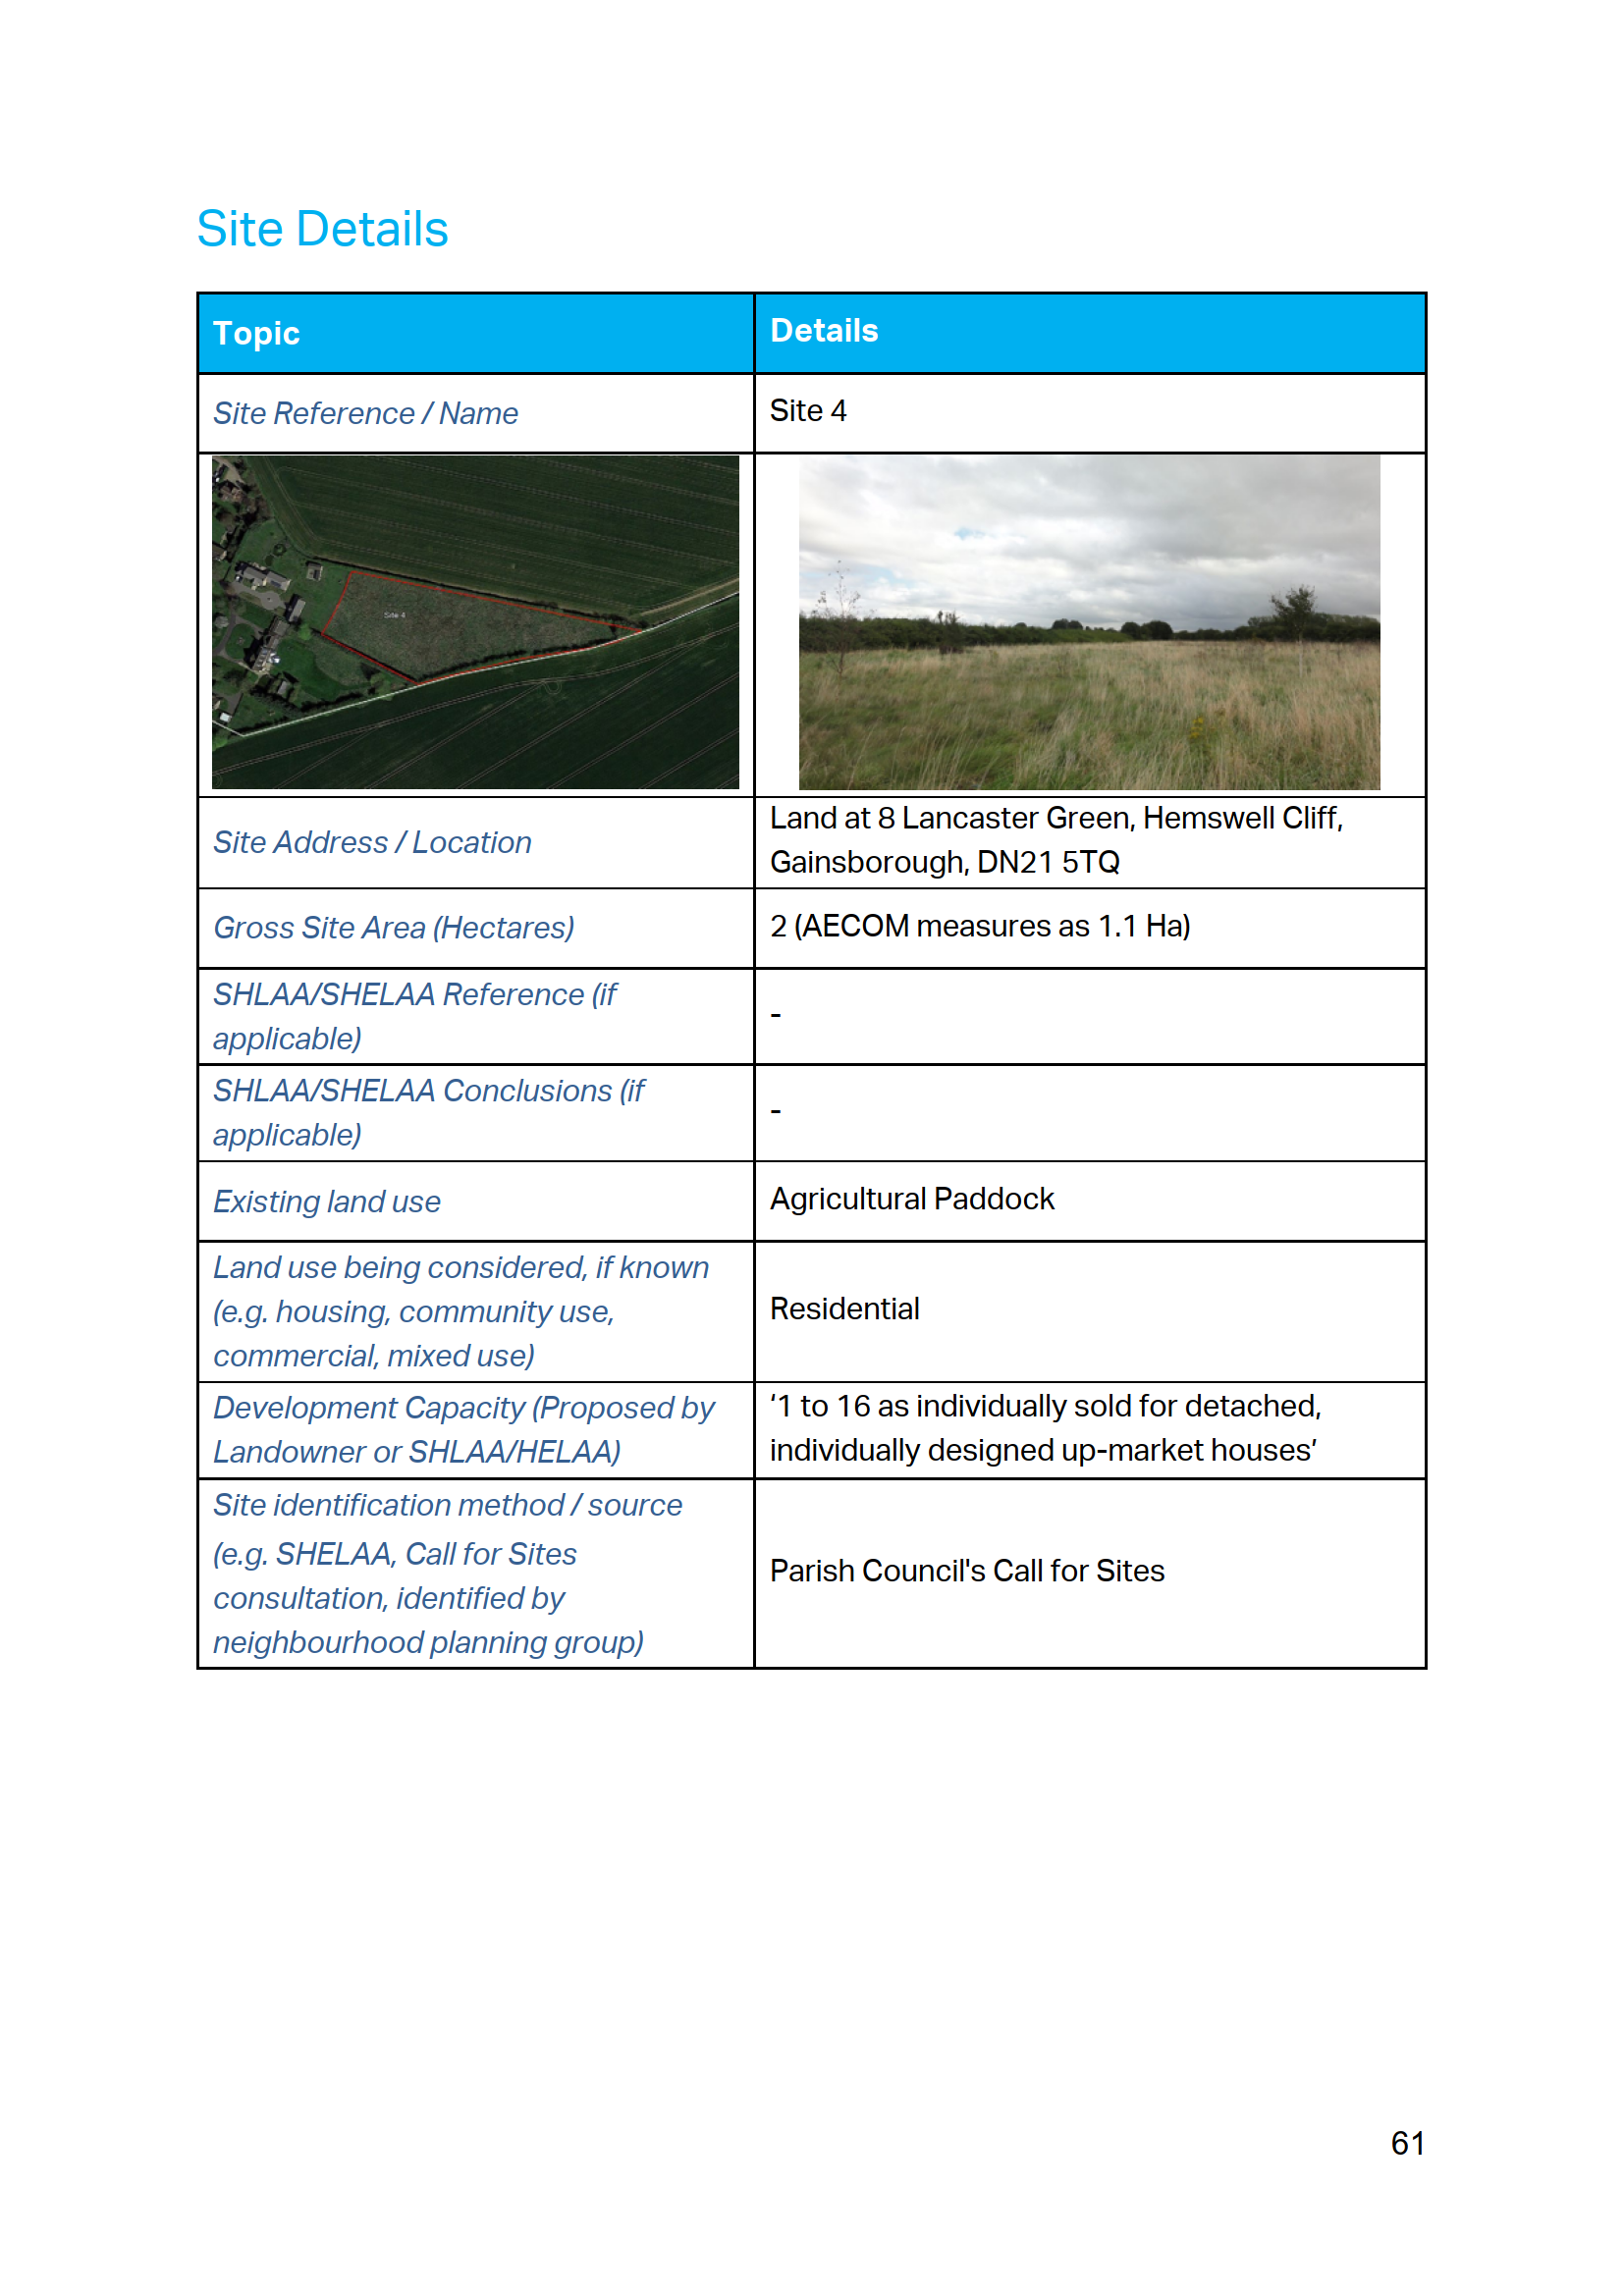 Hemswell_Cliff_Site_Options_and_Assessment_Final_041119-2_61.png